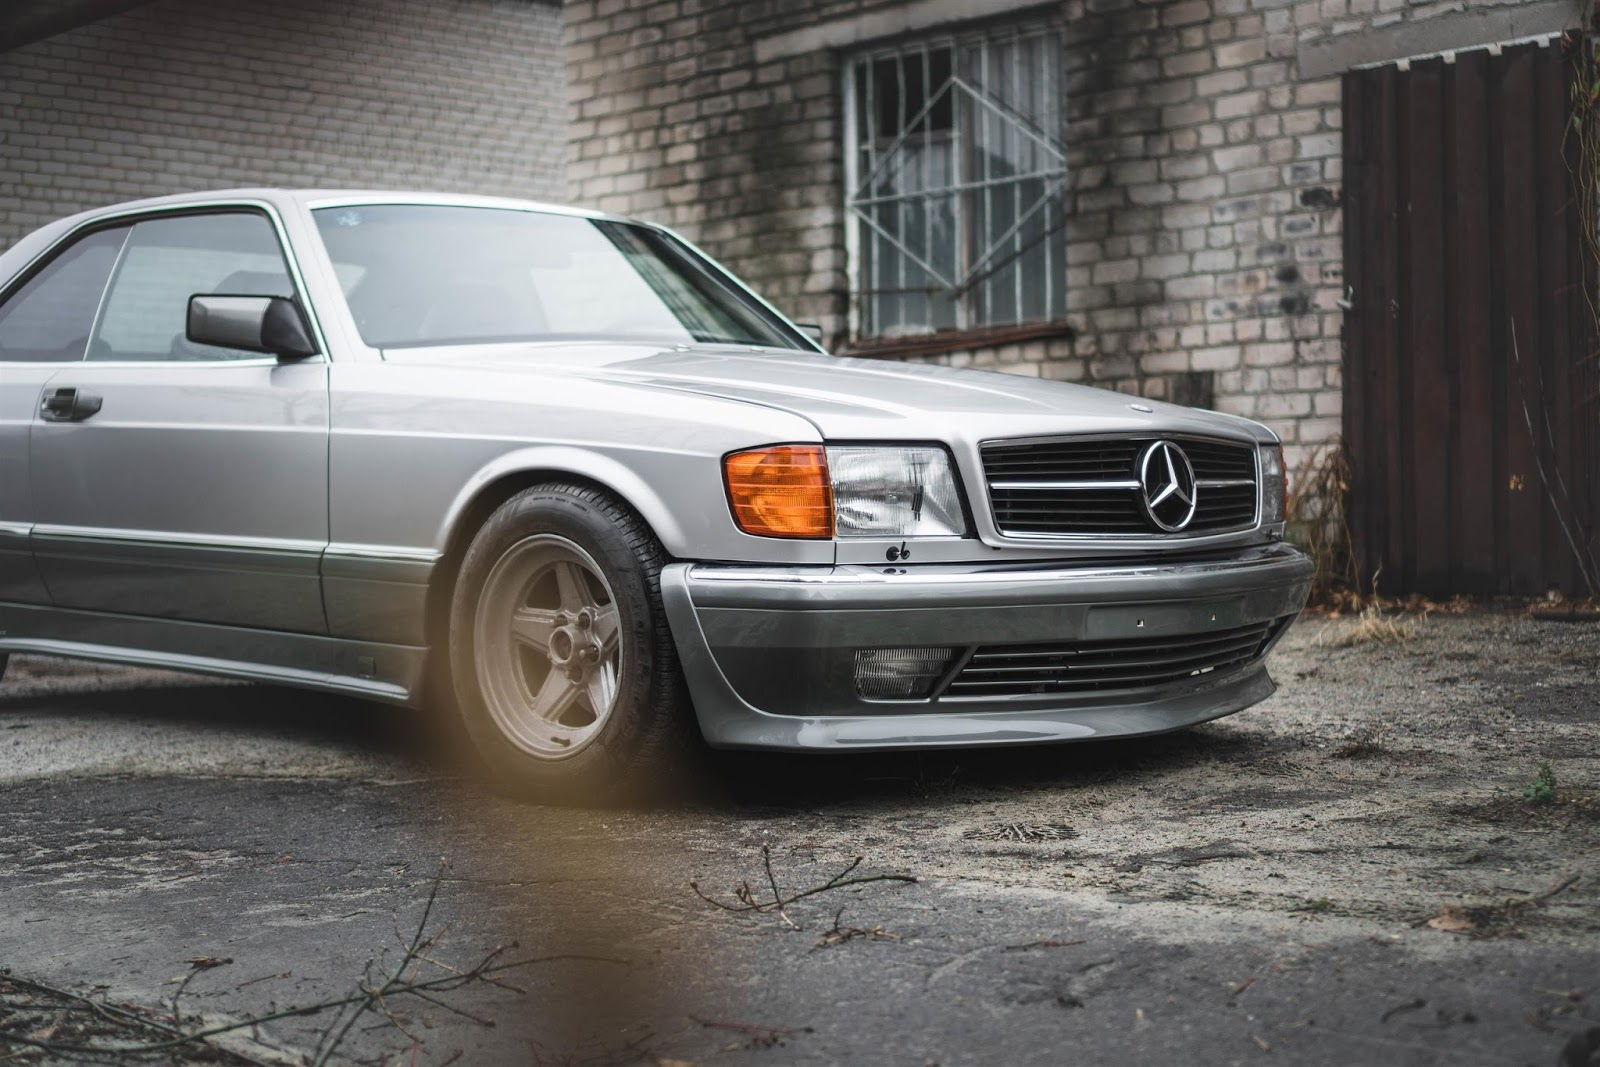 Mercedes benz w126 sec on 16 amg penta wheels benztuning for Mercedes benz wheels rims